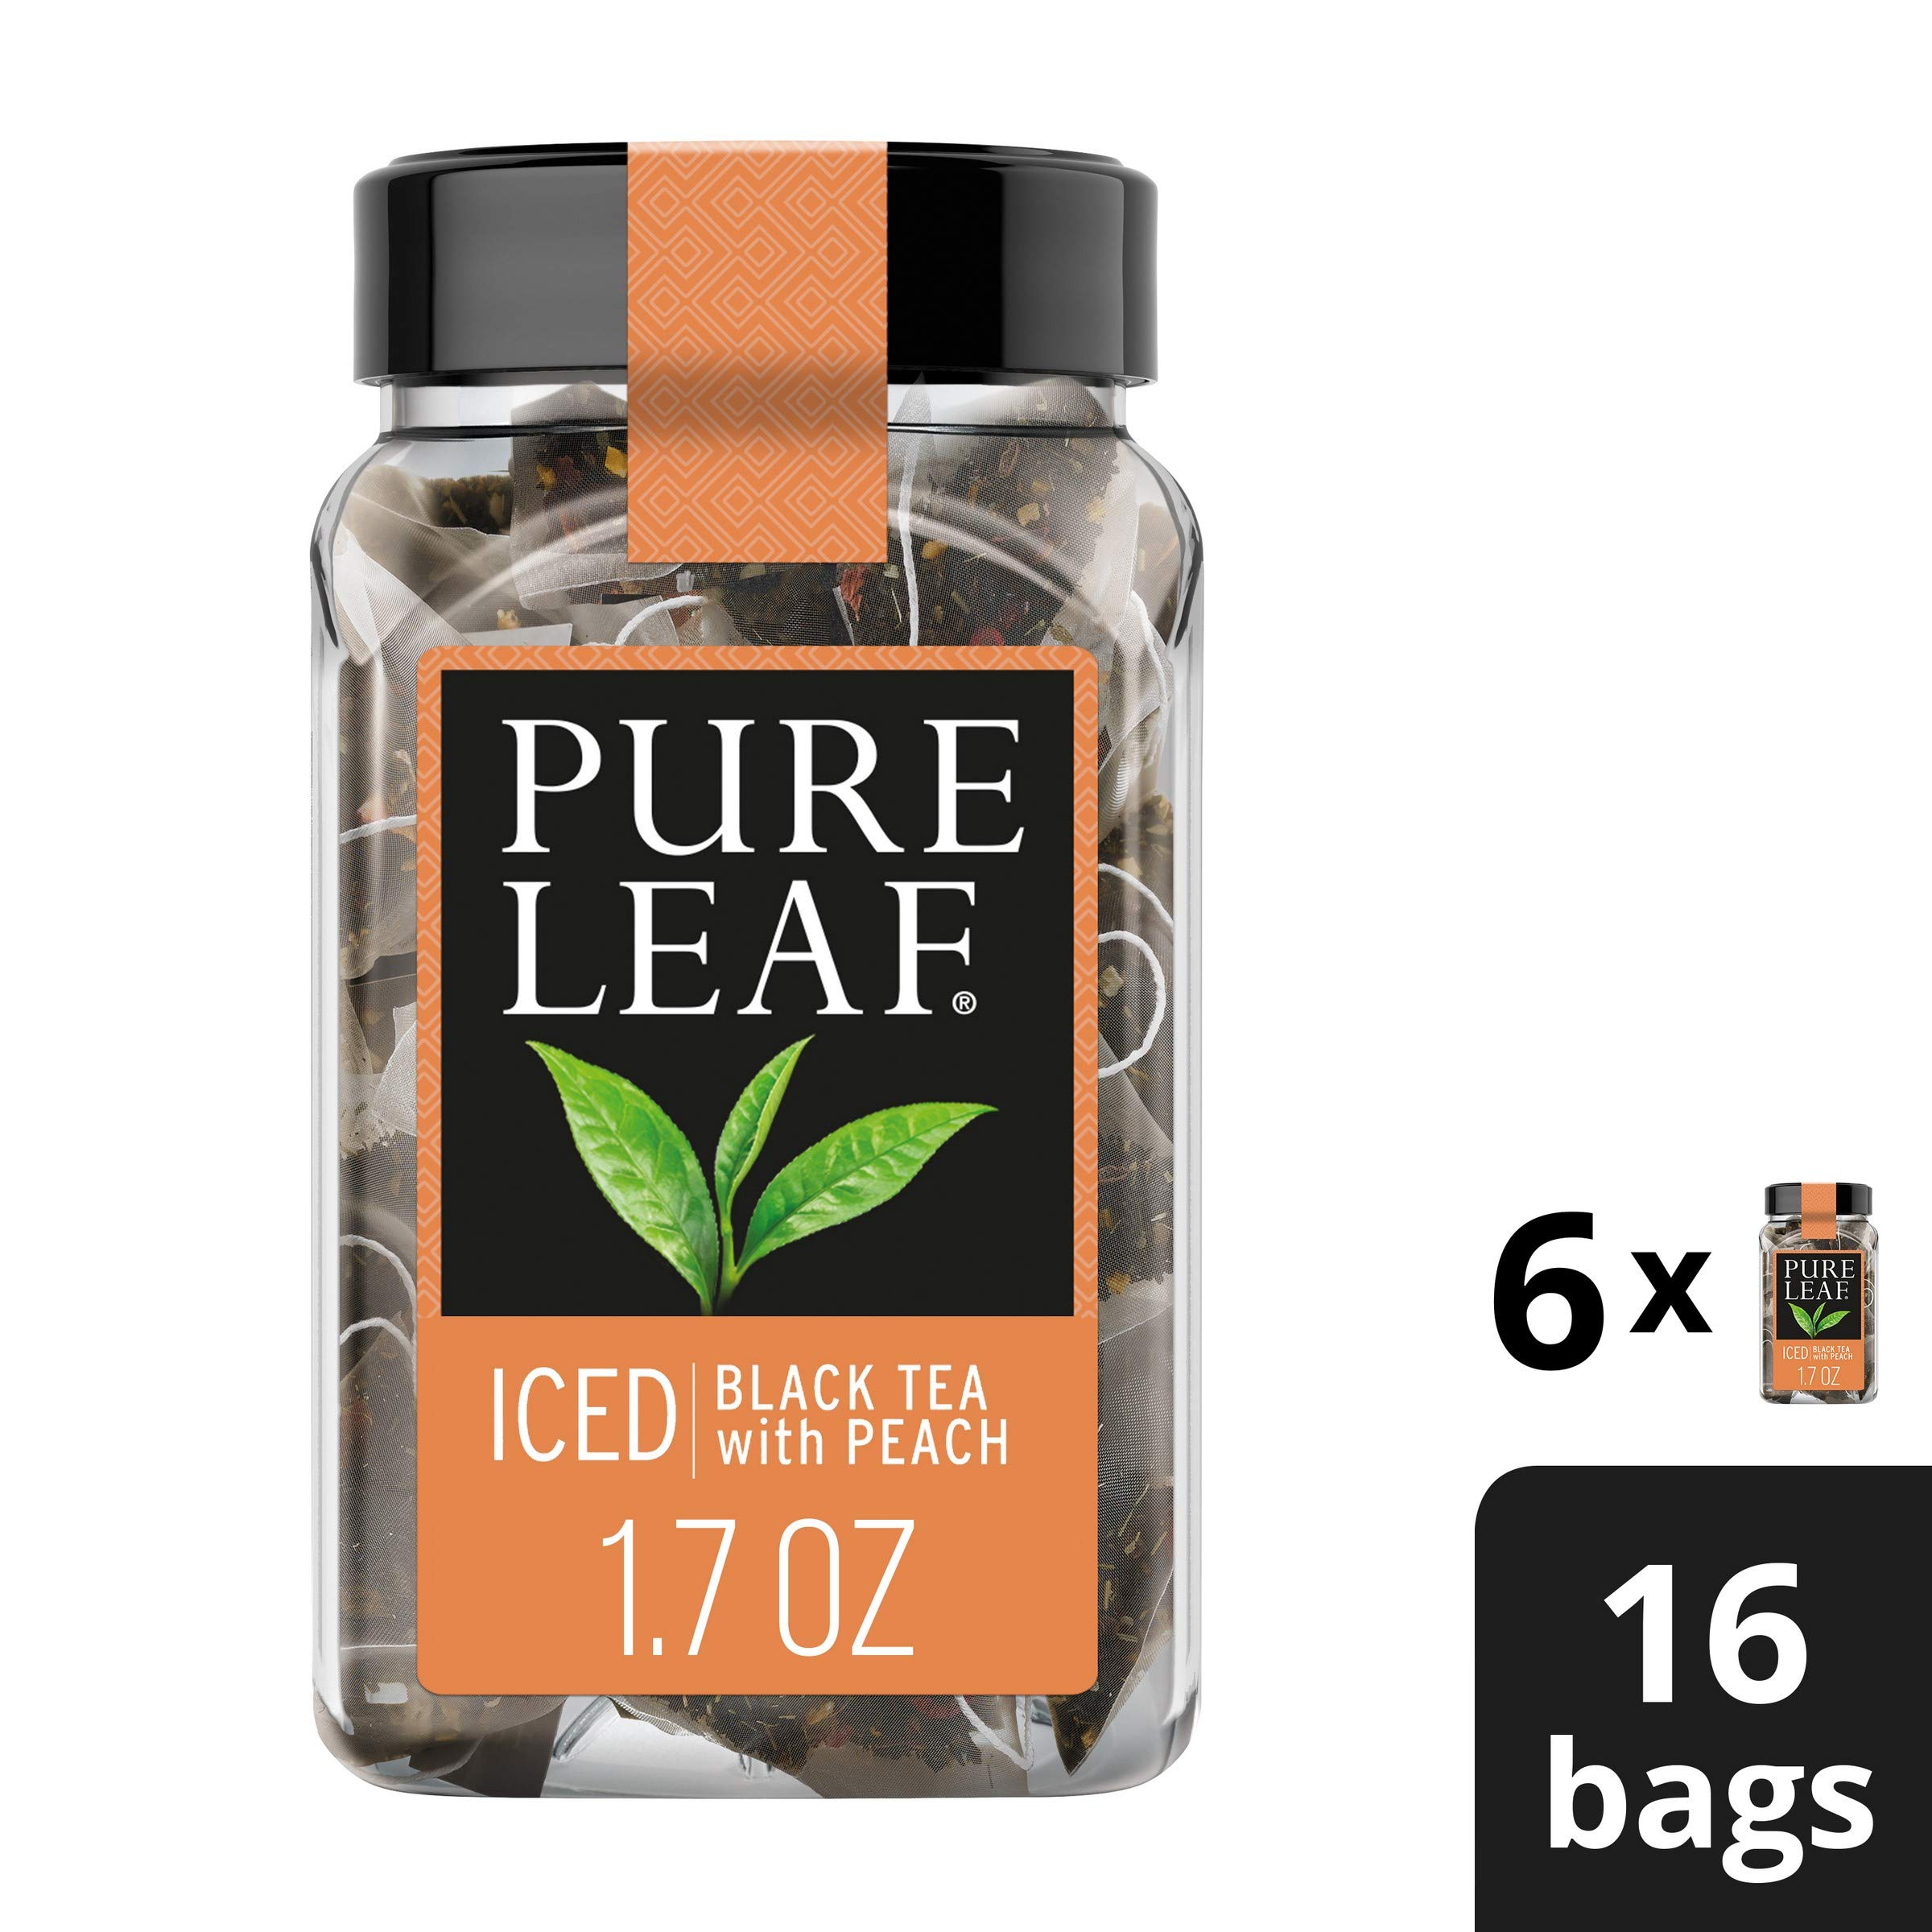 Pure Leaf Iced Tea Bags, Black Tea with Peach, 16 ct (Pack of 6)